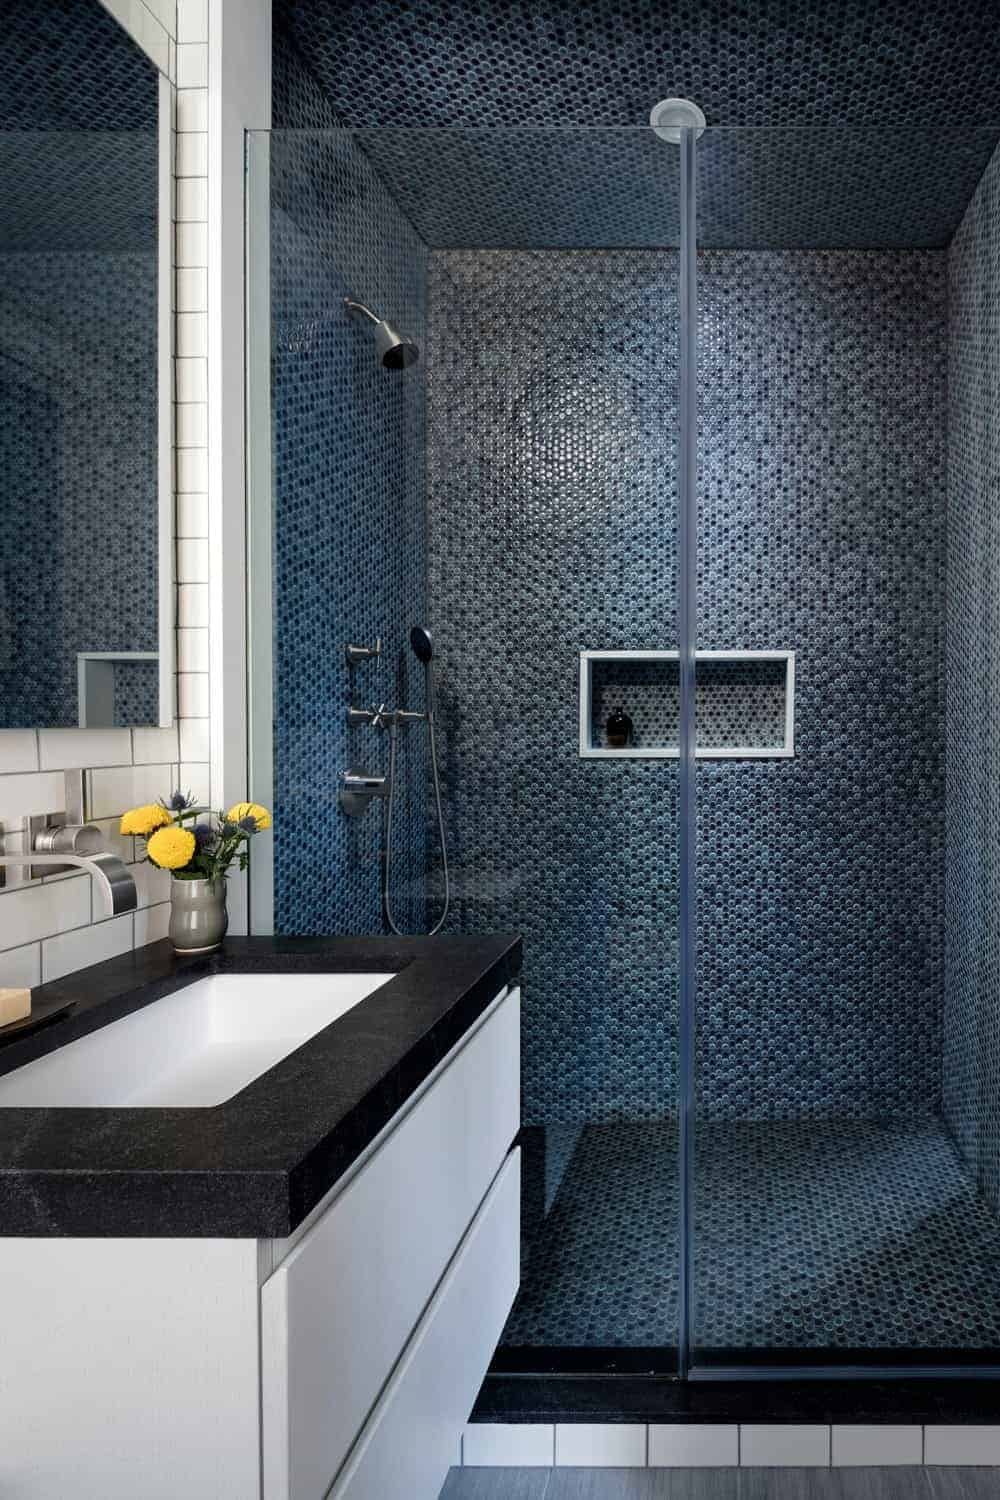 This simple bathroom is elevated with its brilliant black and green patterned tiles of the shower room floor, ceiling and walls that provide a nice background for the shower room fixtures and white vanity that has a black countertop.